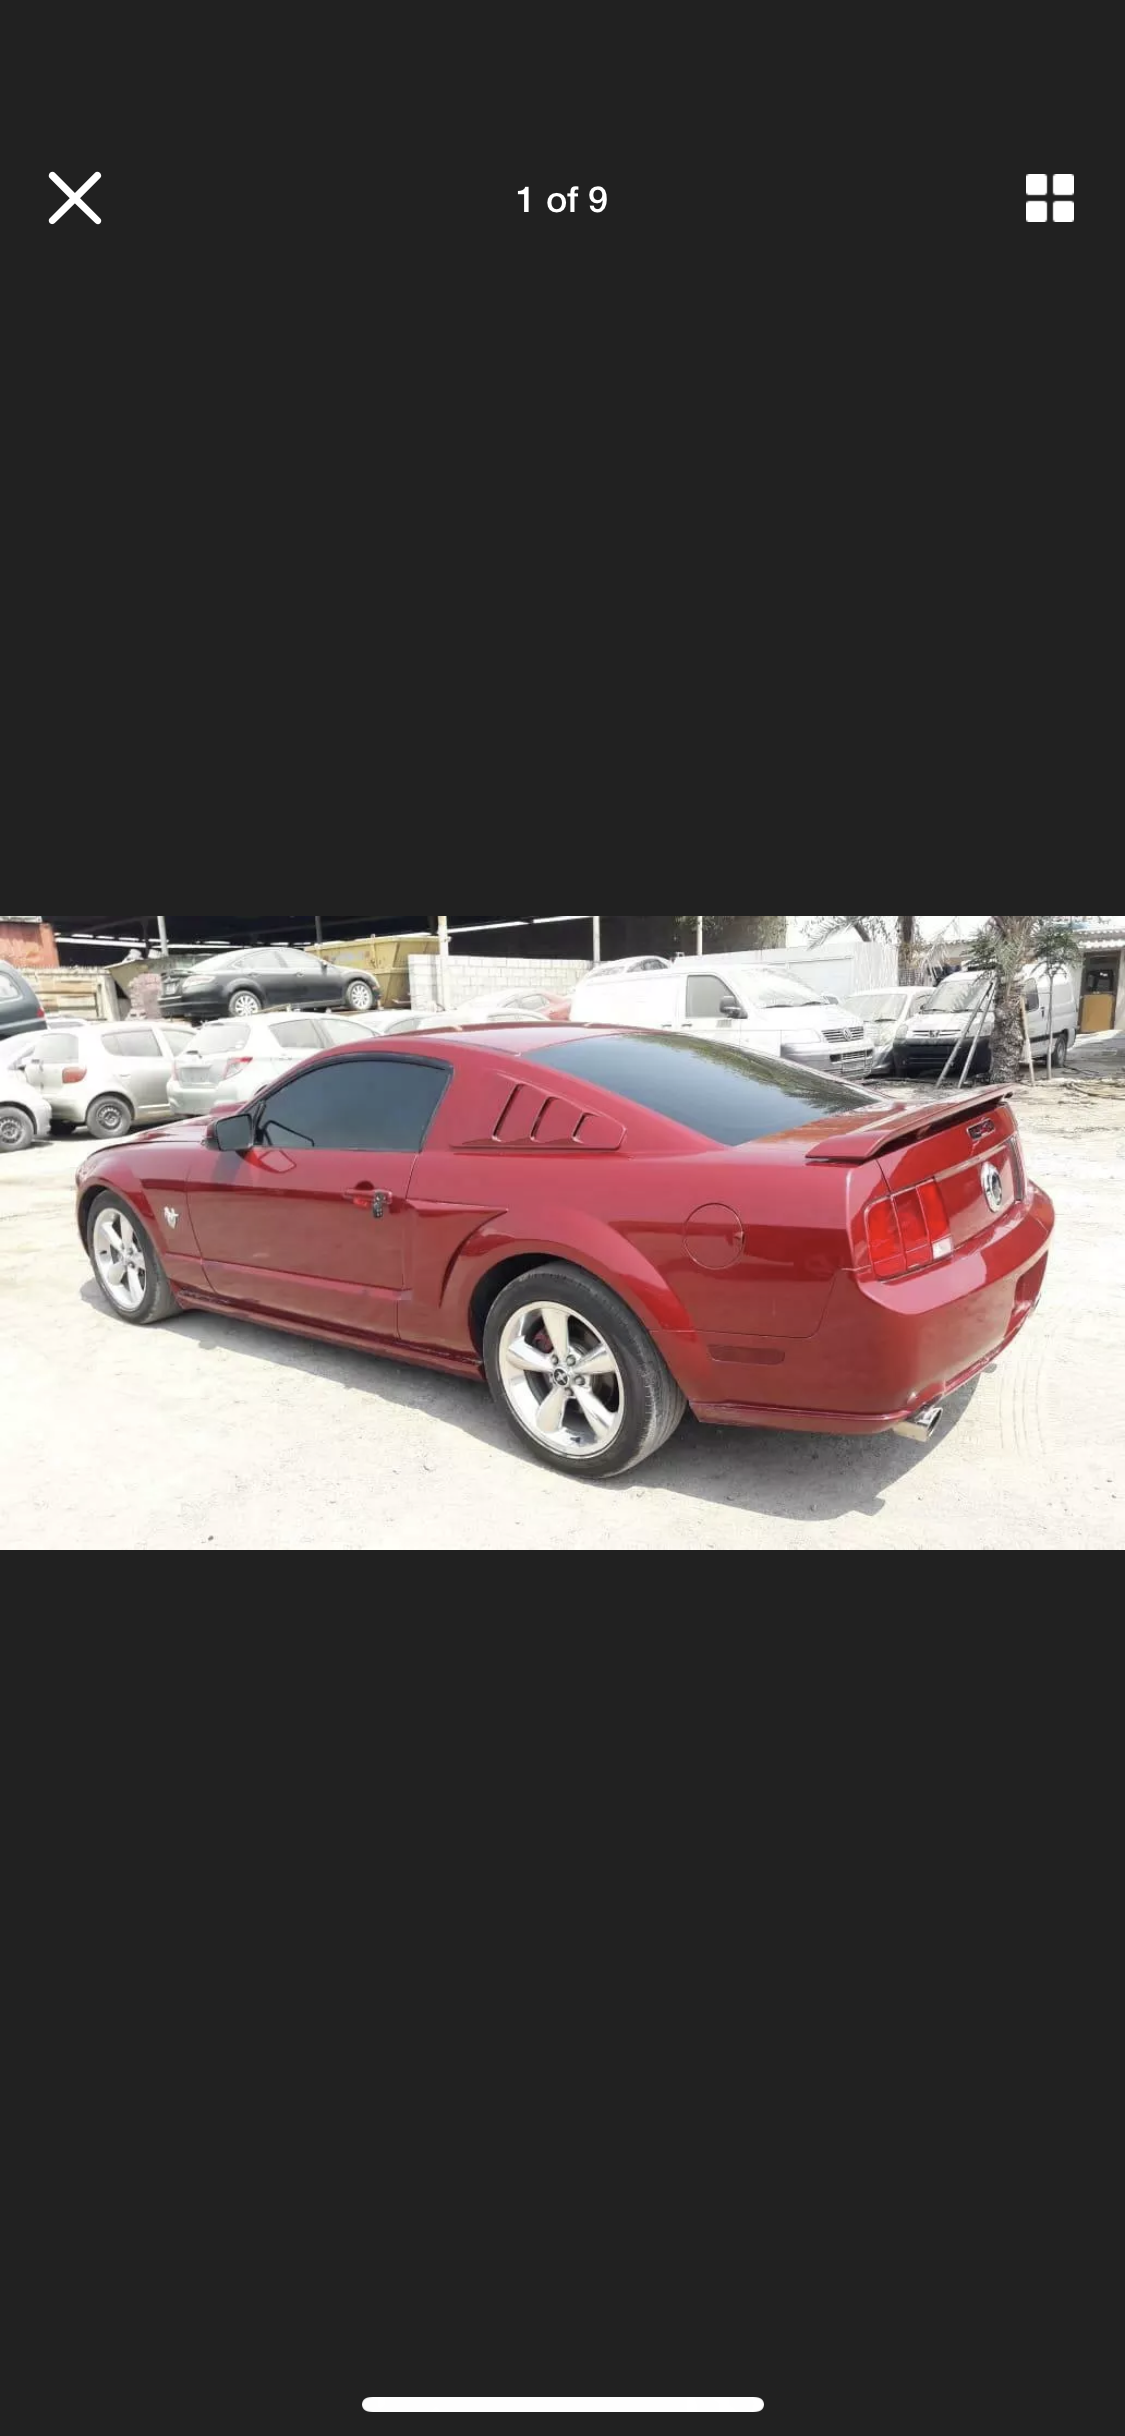 2009 FORD MUSTANG 4.6 V8 GT RARE MANUAL LHD FRESH IMPORT For Sale (picture 1 of 6)